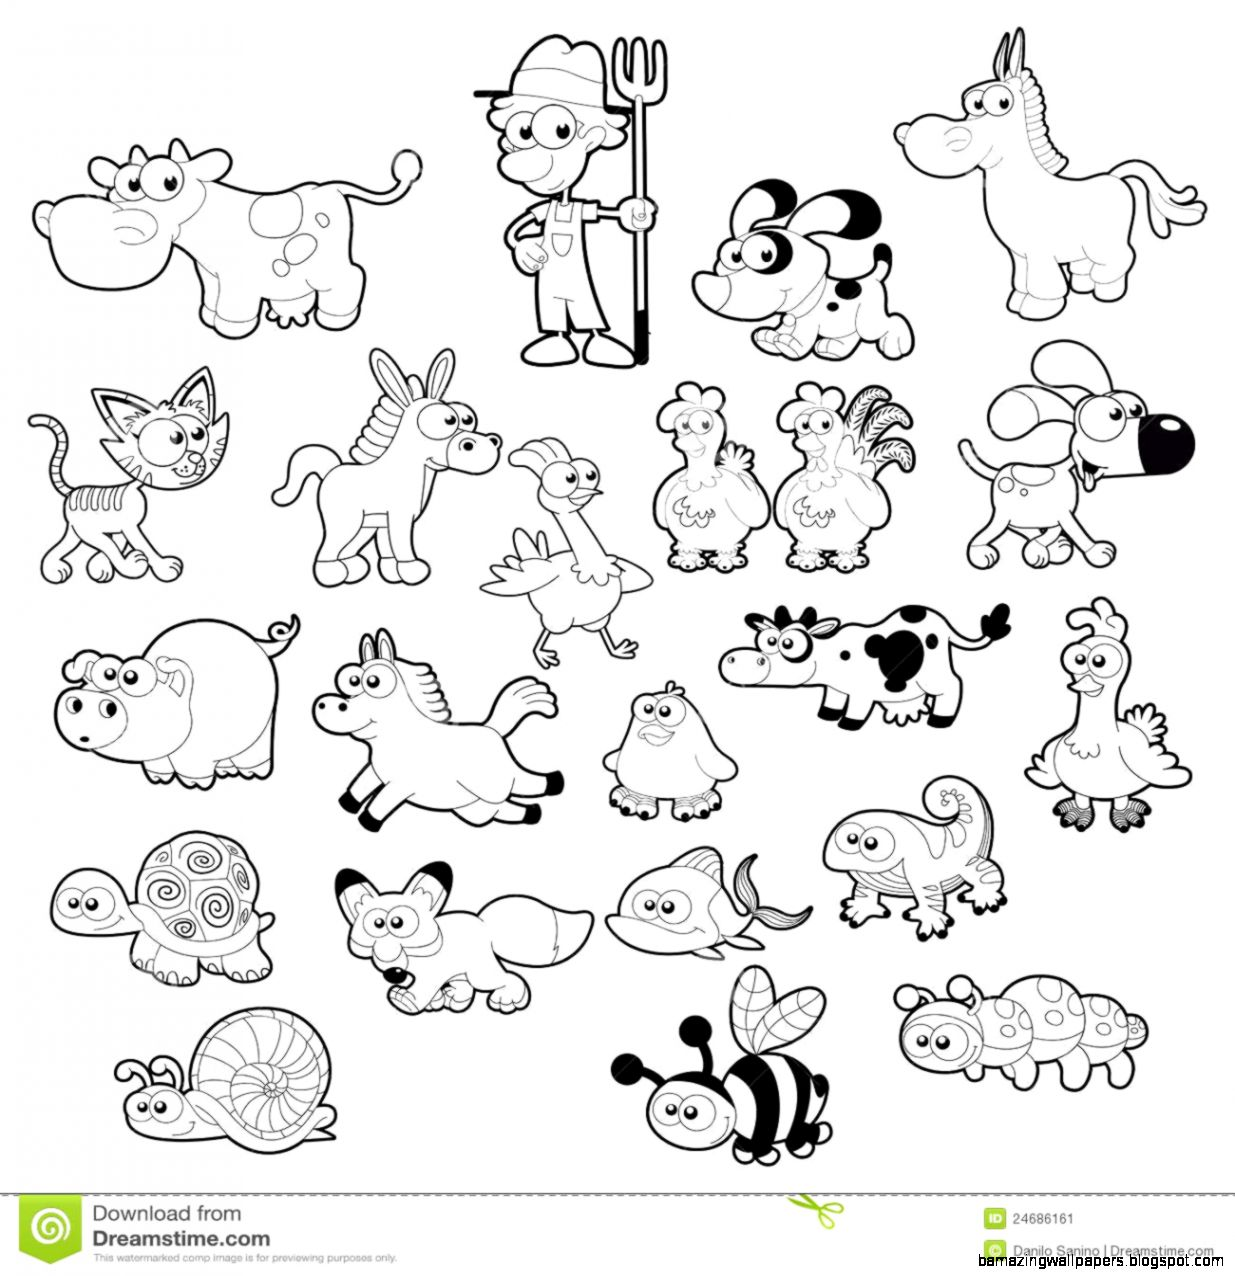 Animals Clipart Black And White Hd Background Wallpaper 27 HD